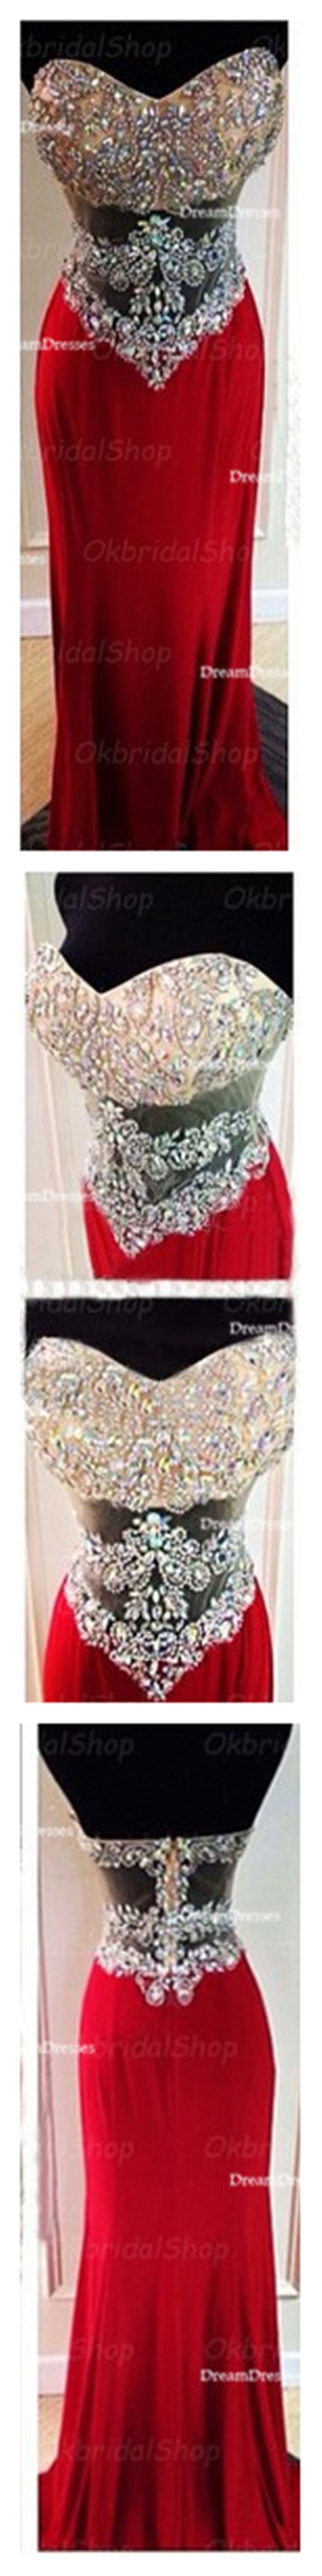 best prom dresses images on pinterest party ideas prom ideas